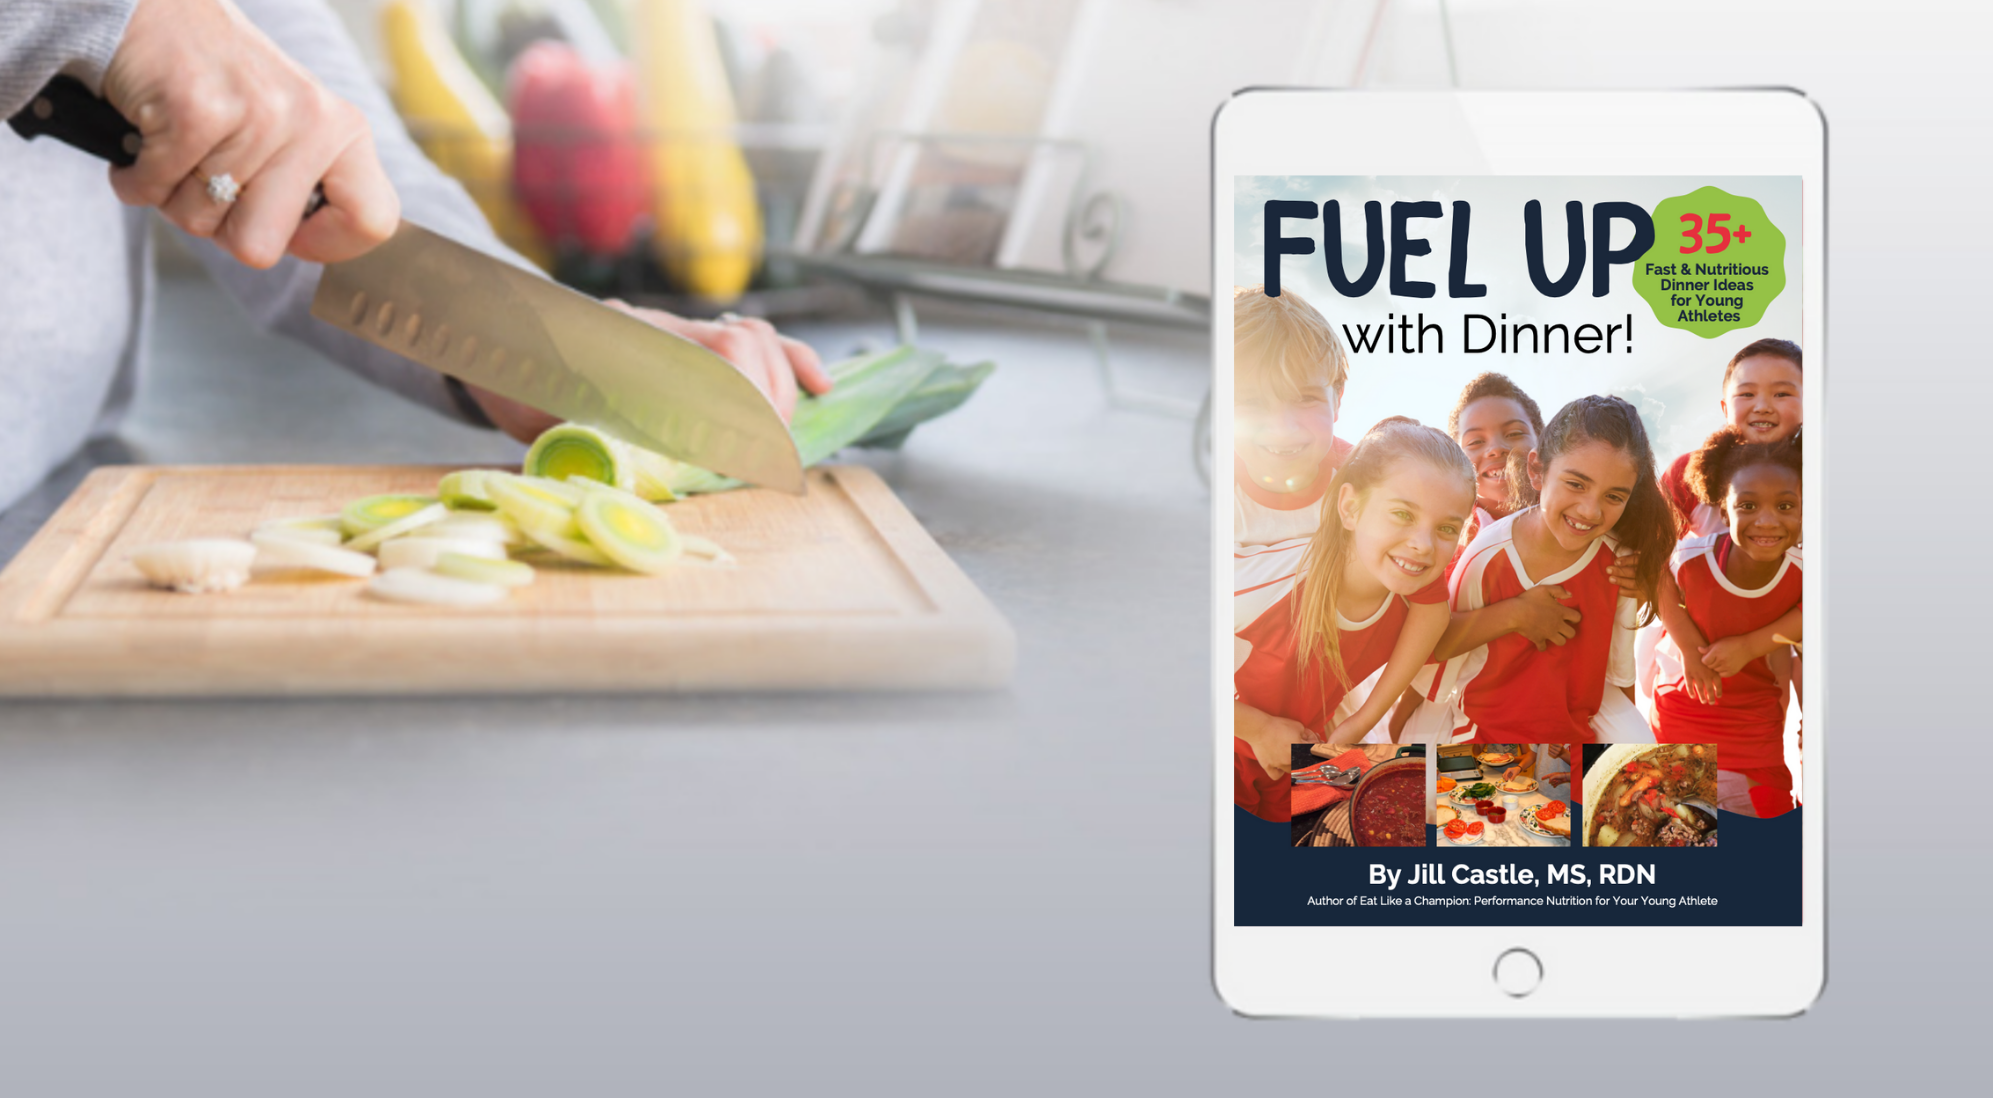 Fuel Up! Dinner Recipes for Young Athletes